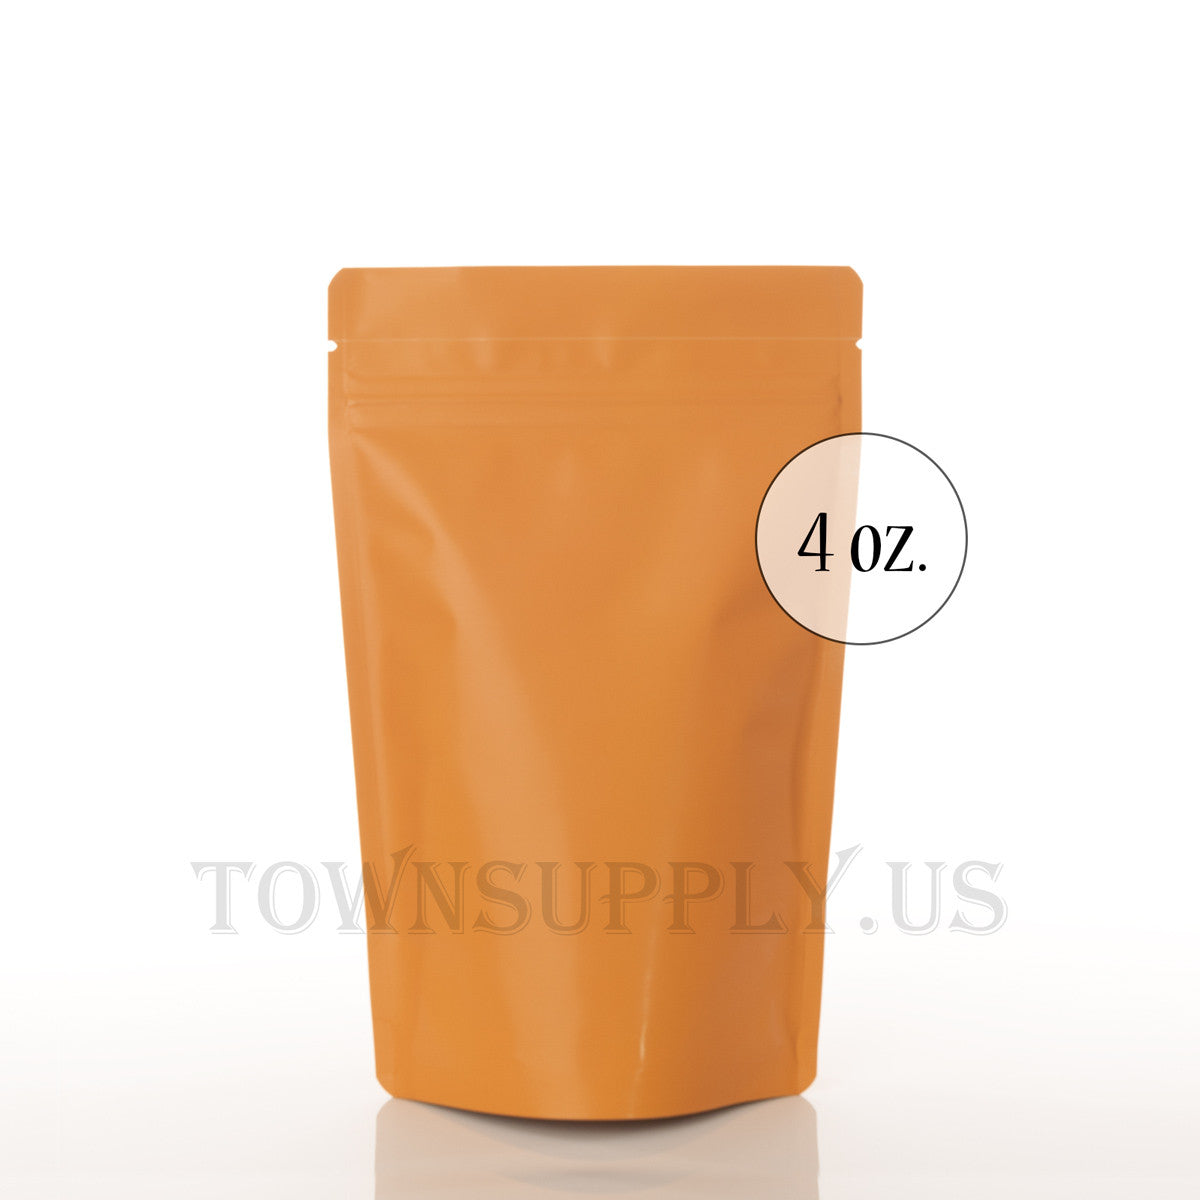 matte orange resealable stand up pouch, 4 oz. bags - Town Supply